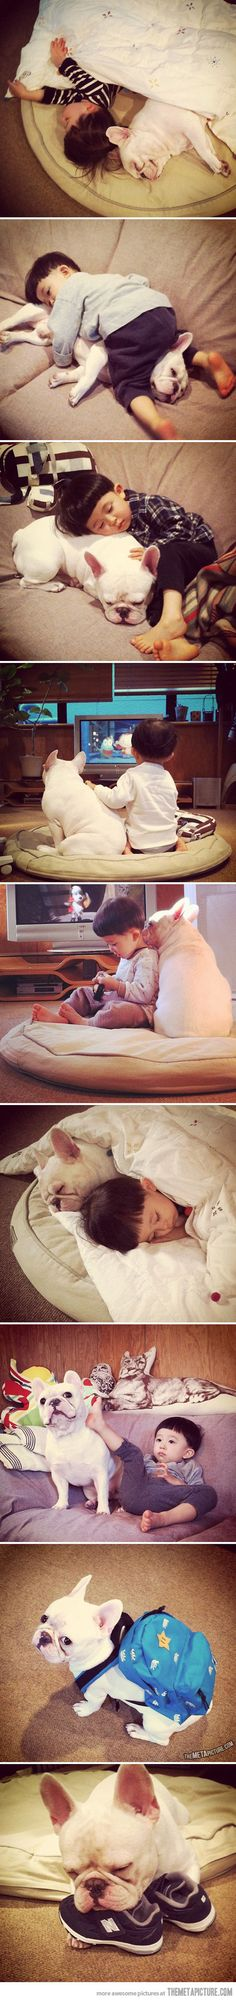 Nothing sweeter than a child and their dog. <3